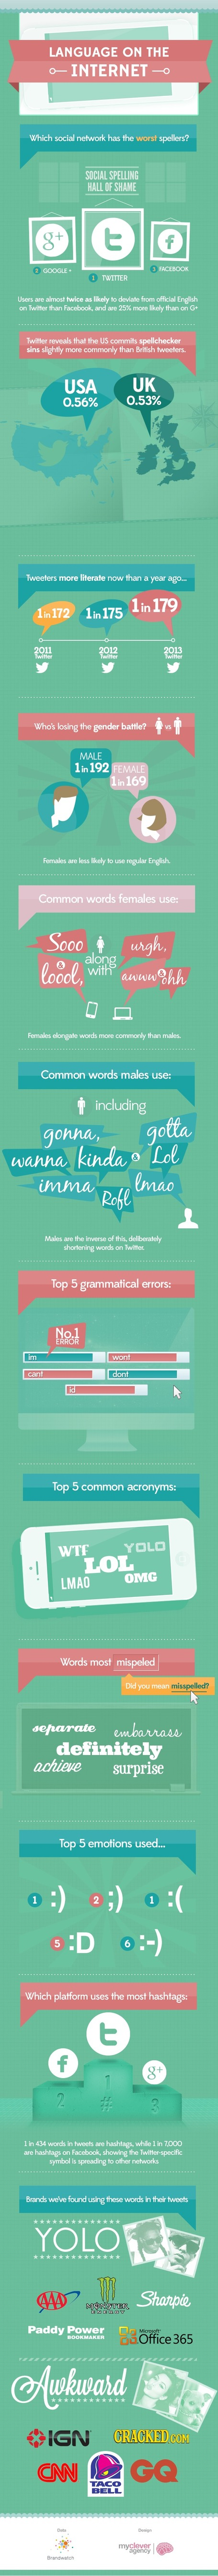 Infographic: Commonly misspelled words on Twitter, Facebook and G+ | Web 2.0 for juandoming | Scoop.it